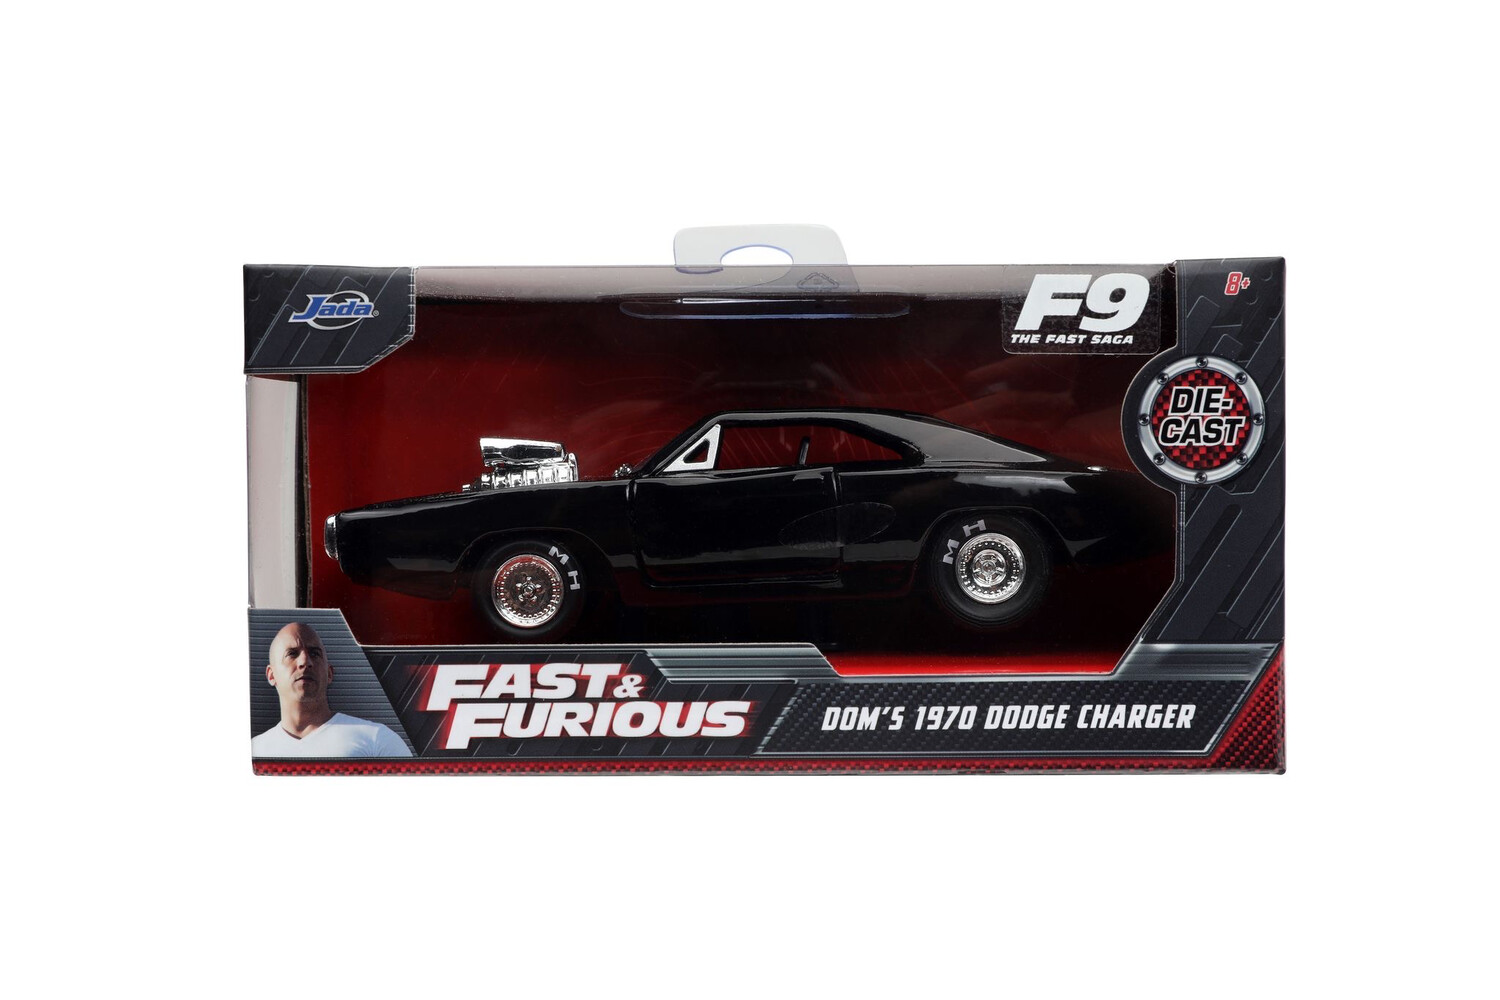 Dom's Dodge Charger F&F 9